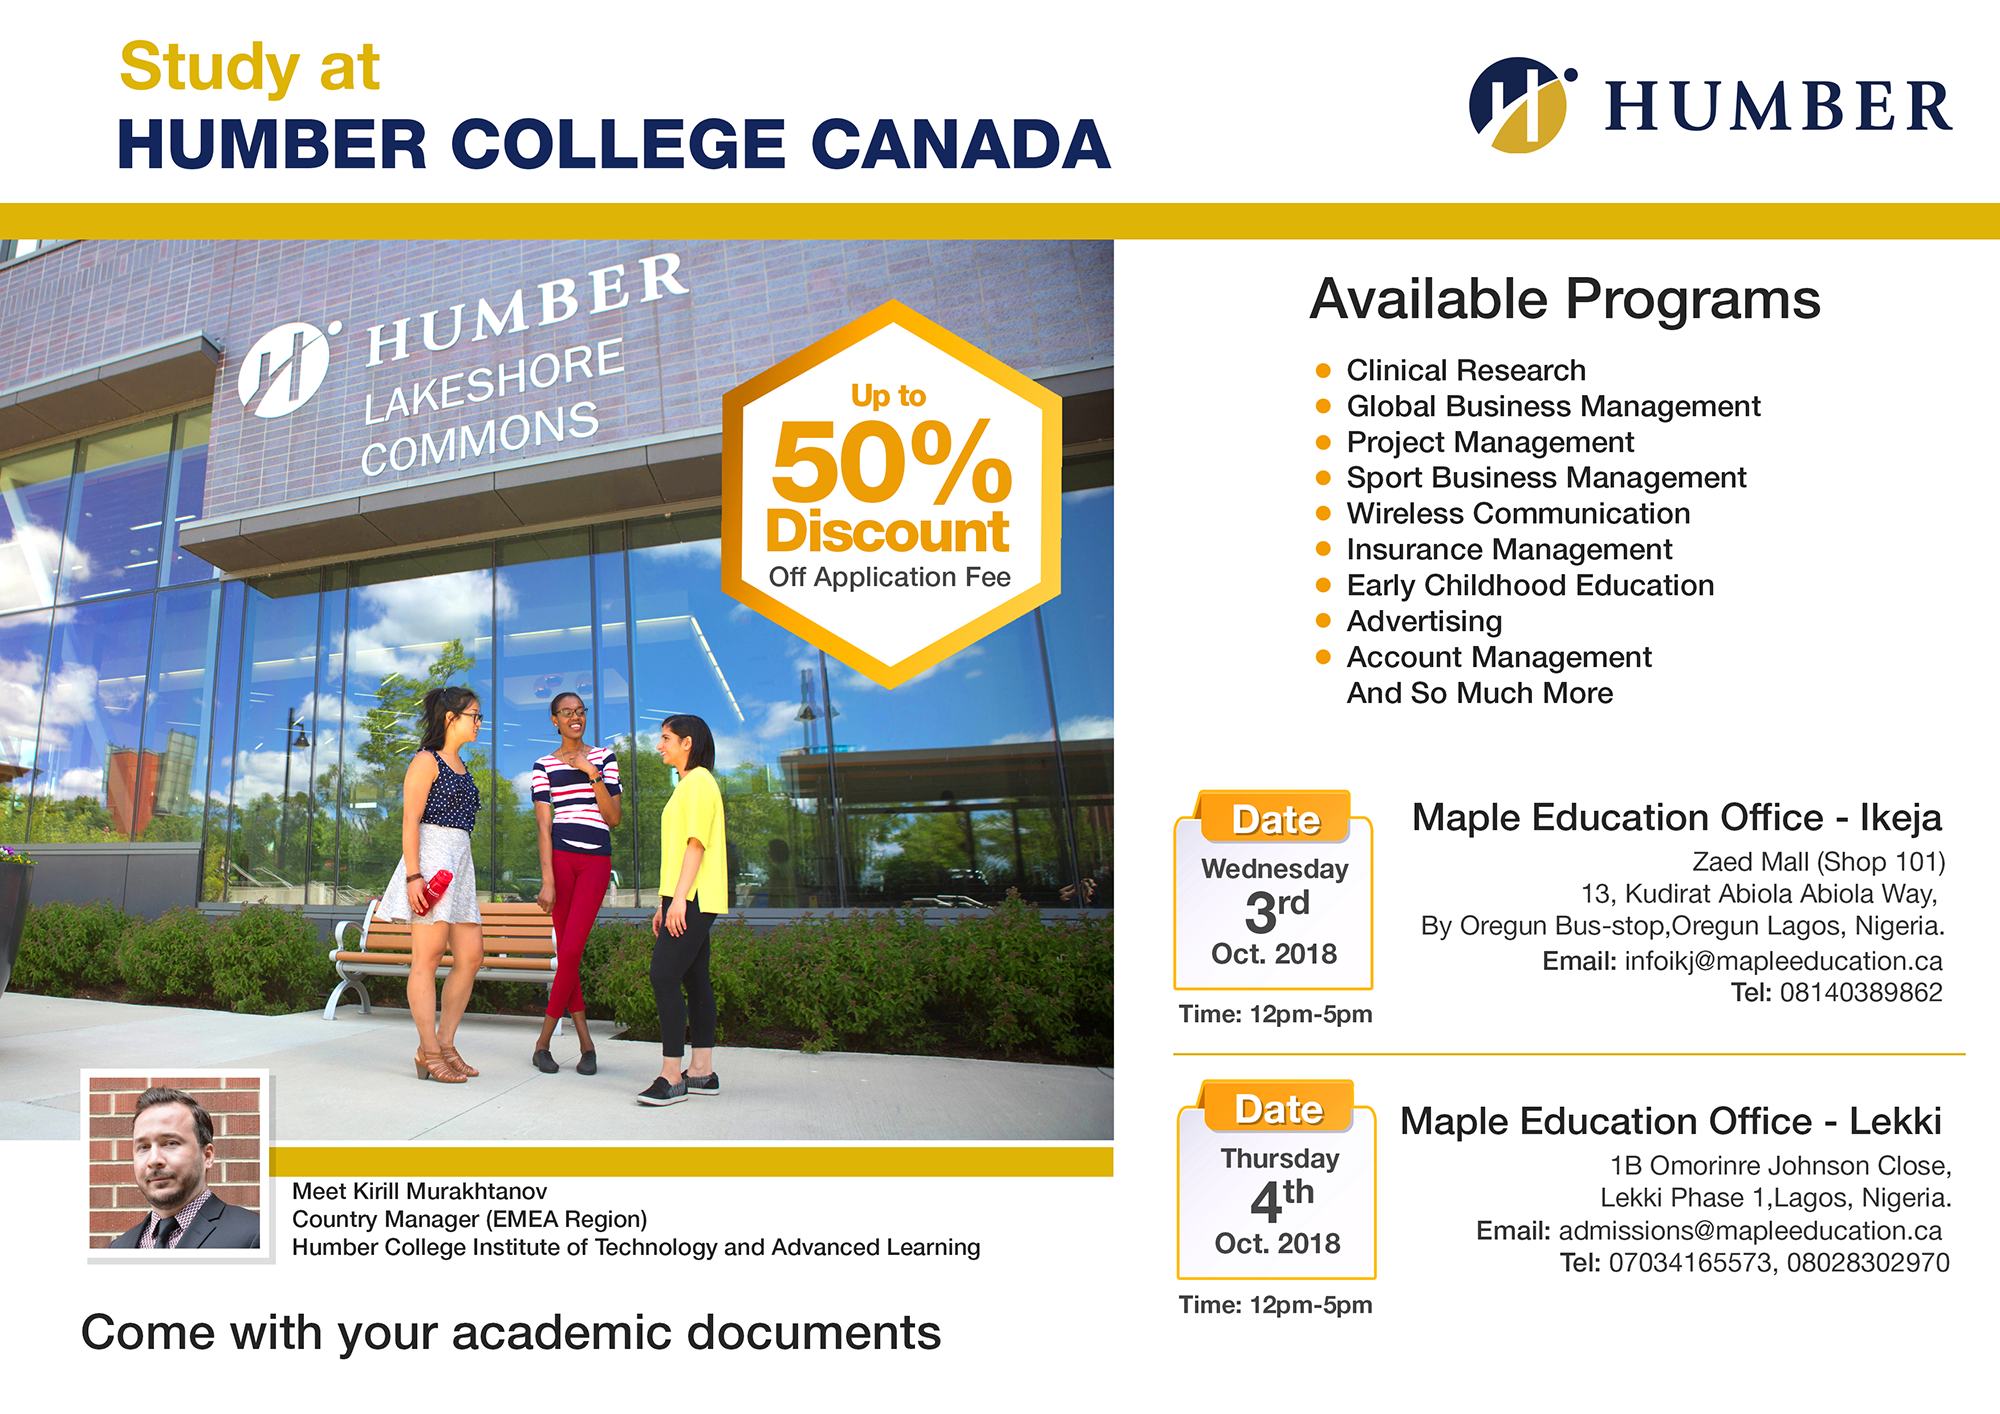 Free Education Seminar work While You Study at Humber College, Canada